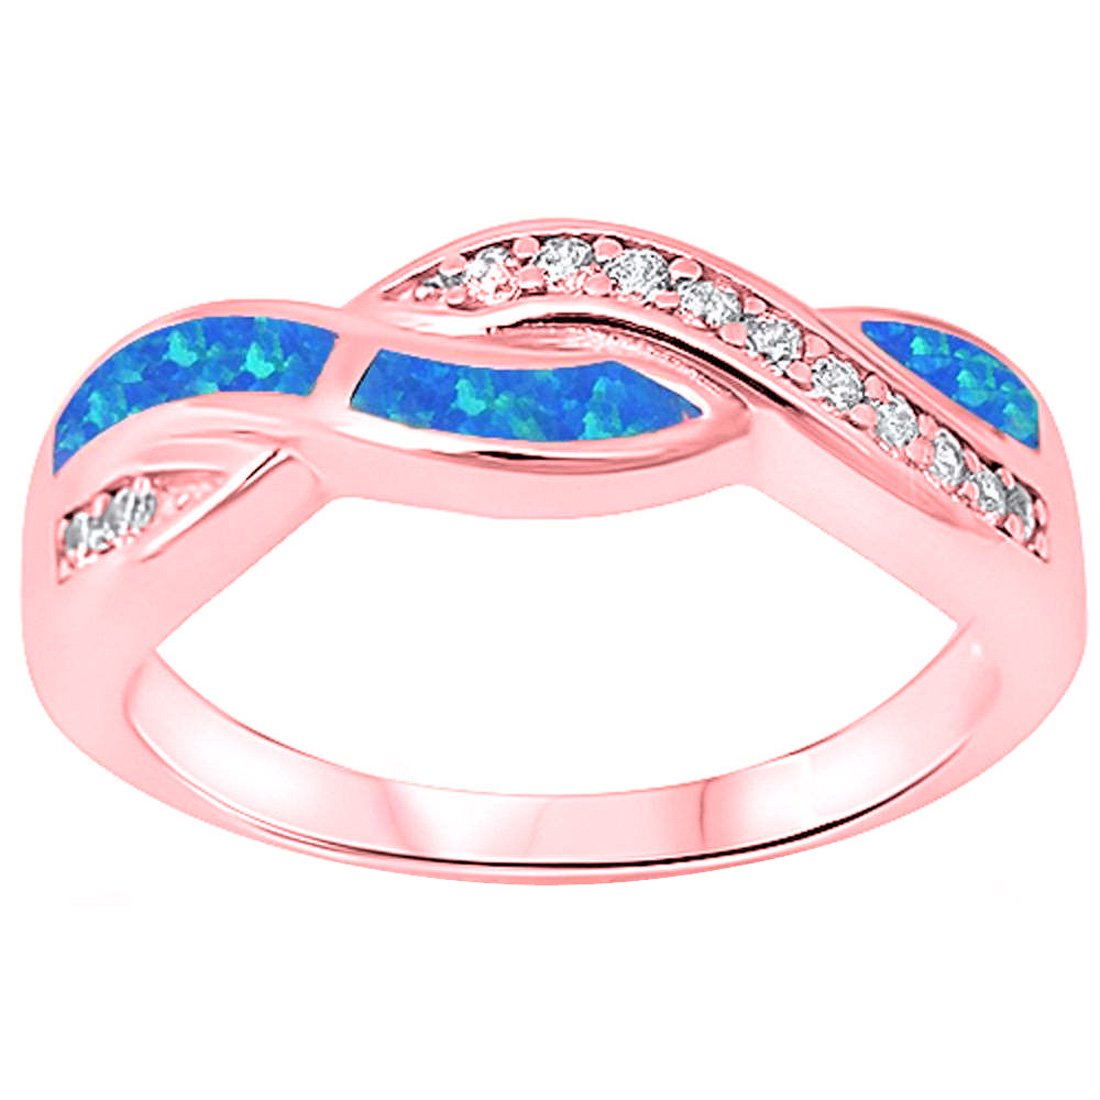 Amazon.com: Blue Apple Co. Twisted Crisscross Infinity Ring Lab ...